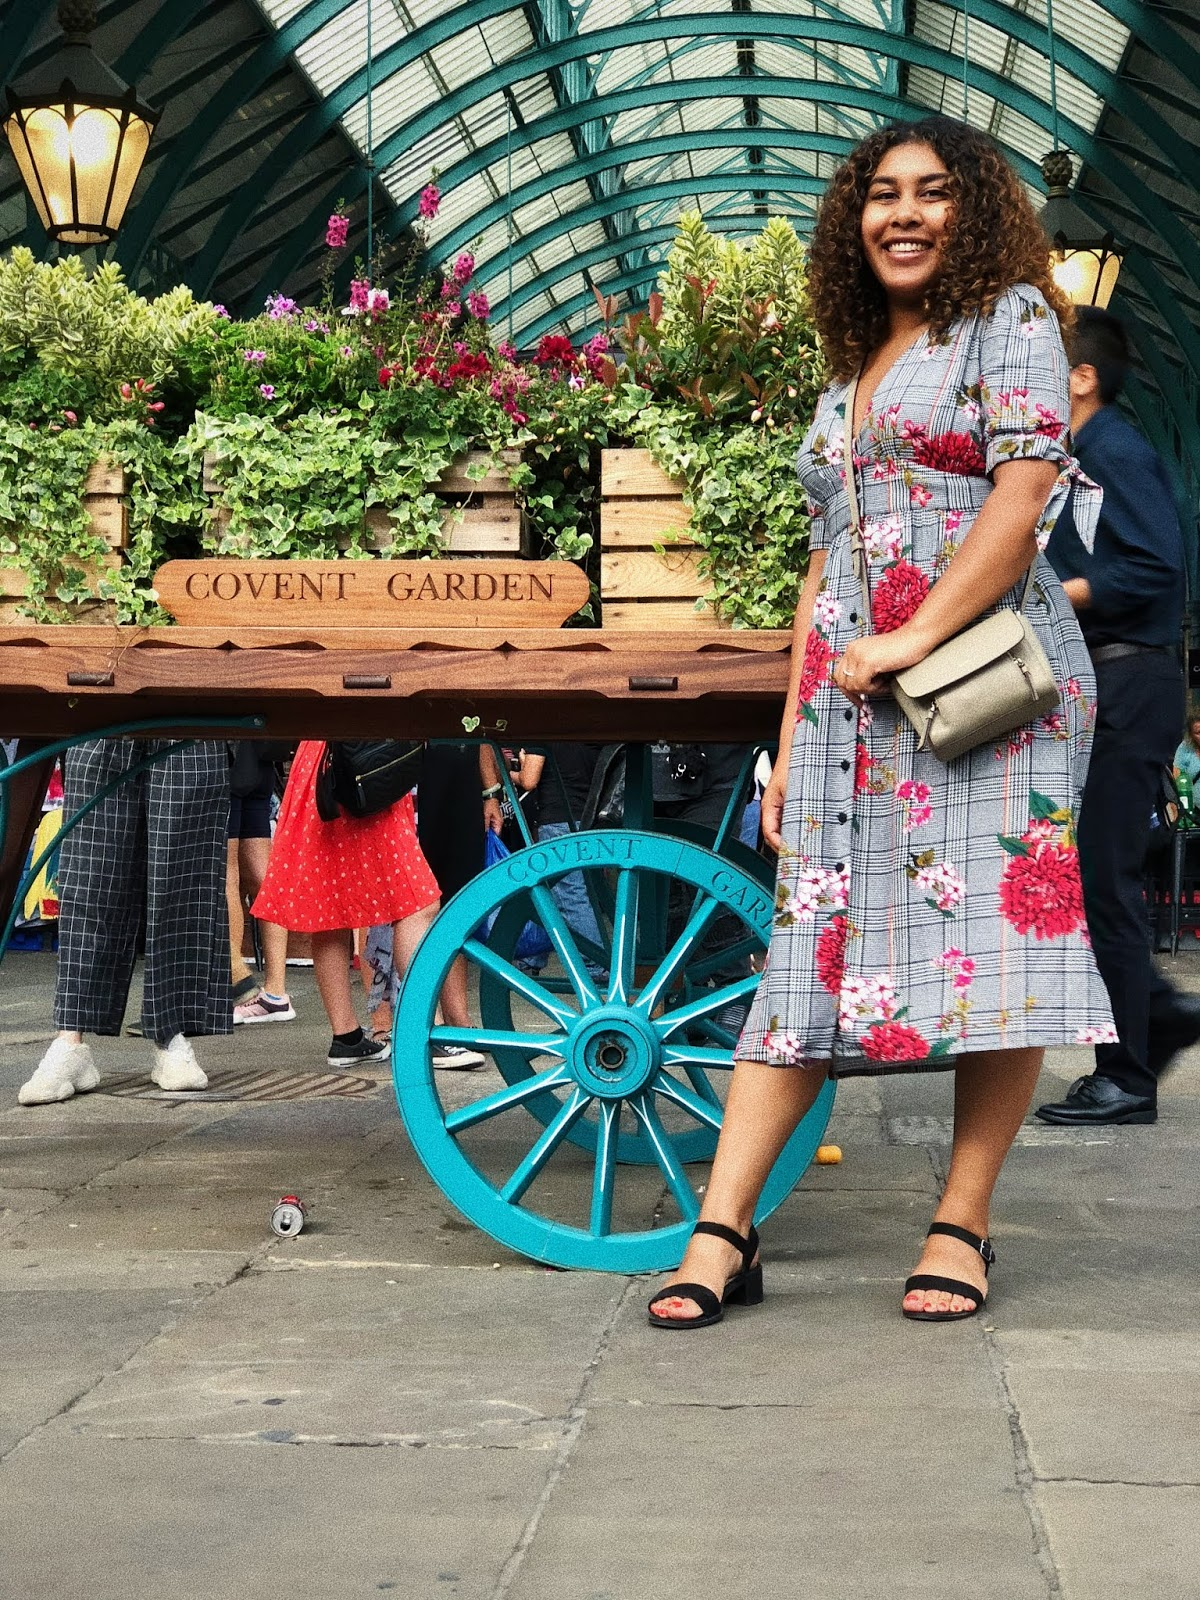 London Staycation: summer nights in Covent Garden*